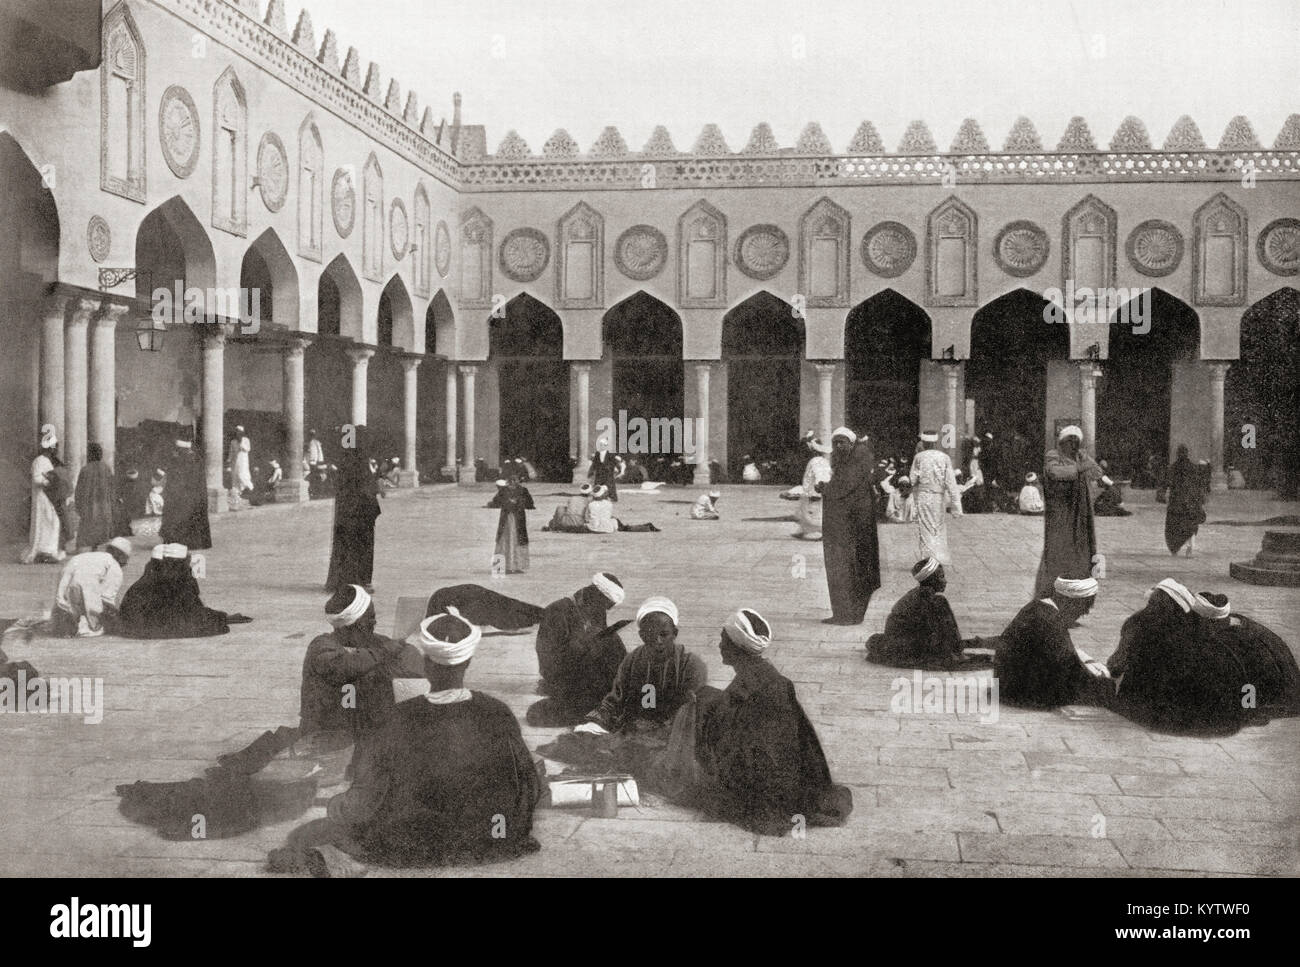 The open court of the University Mosque of Al-Azhar, Cairo, Egypt, seen here in 1880.  From The Wonders of the World, - Stock Image